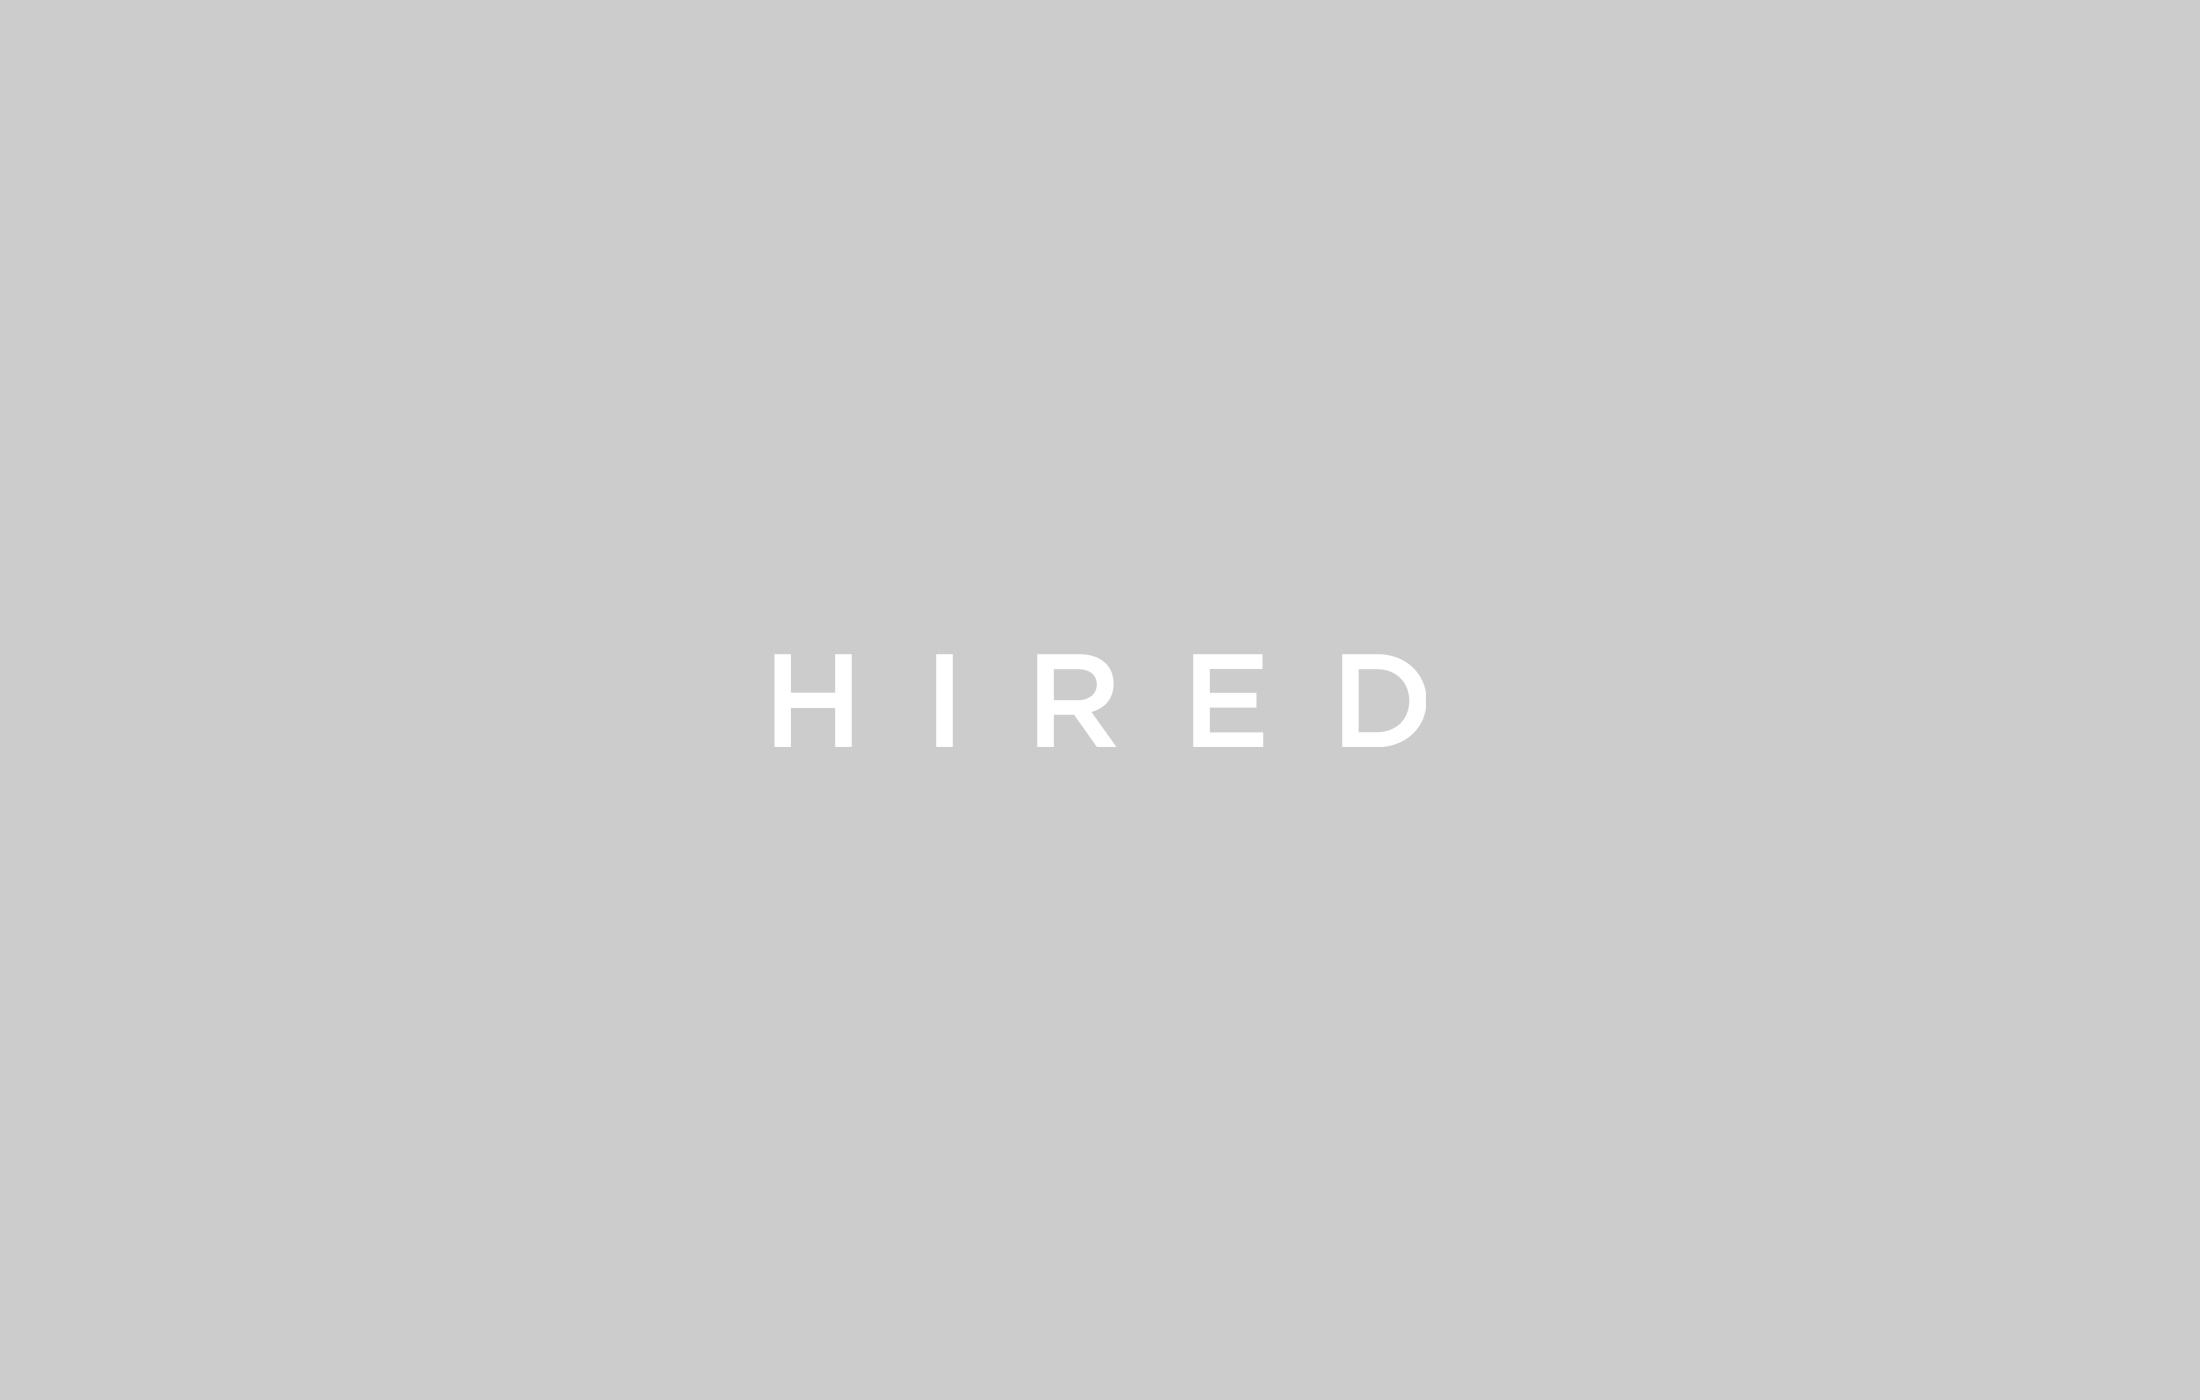 the-hired-brand-gets-a-refresh